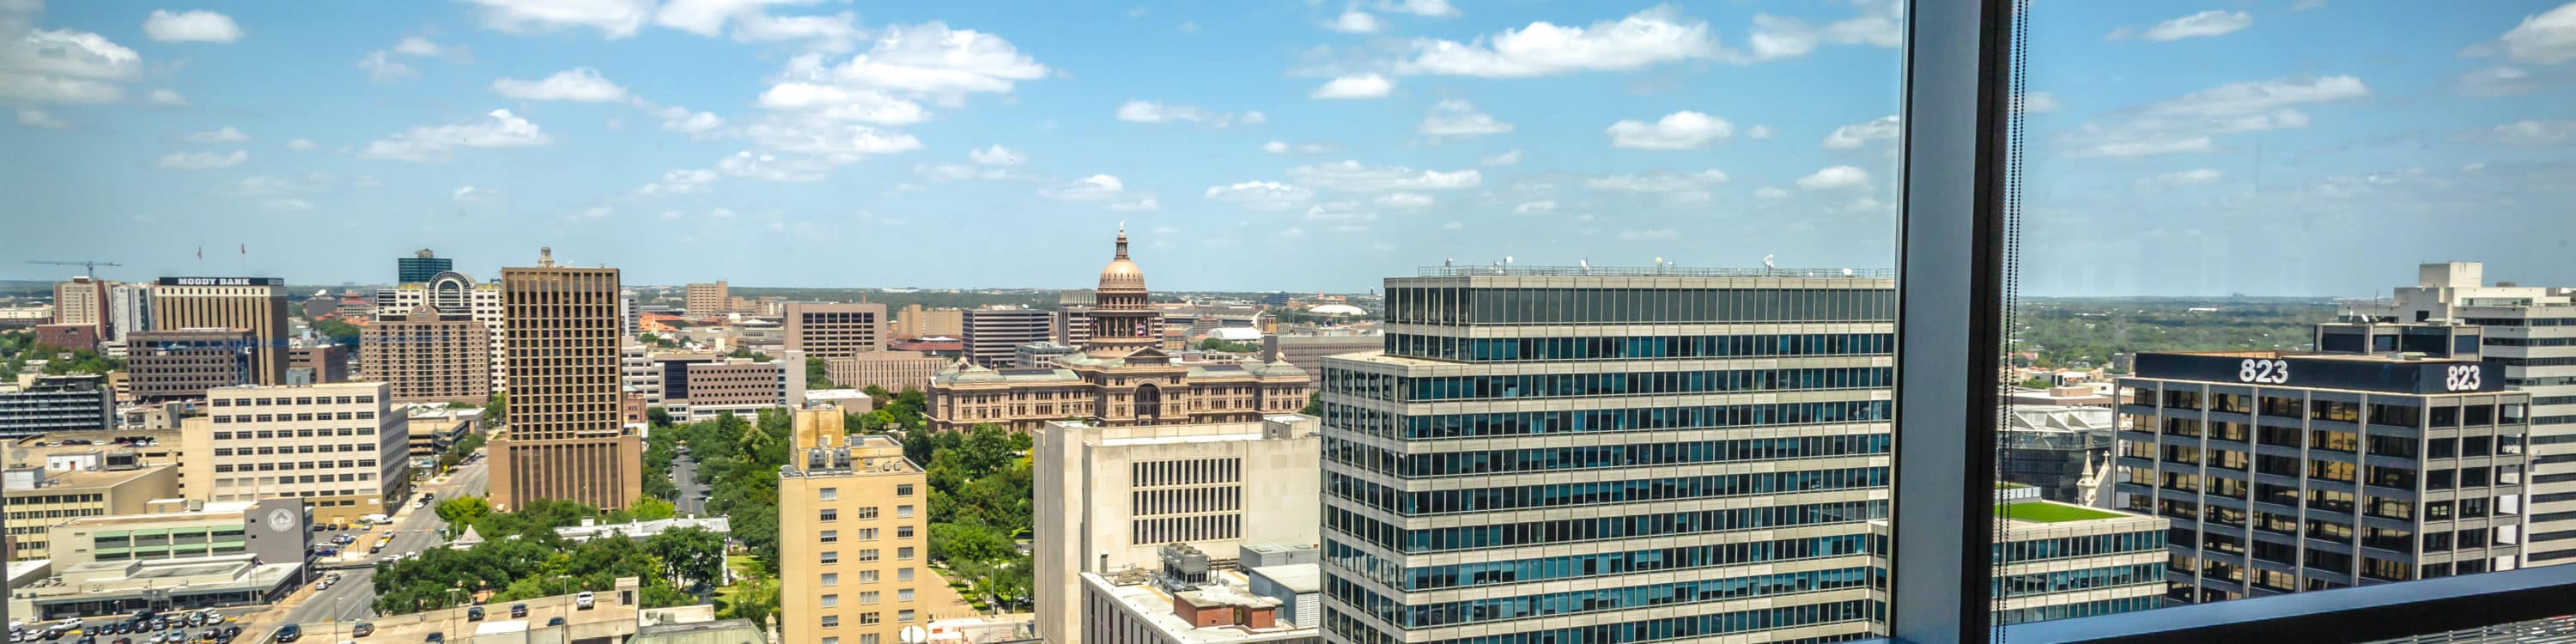 210 West 7th Street | The University of Texas System Building Views